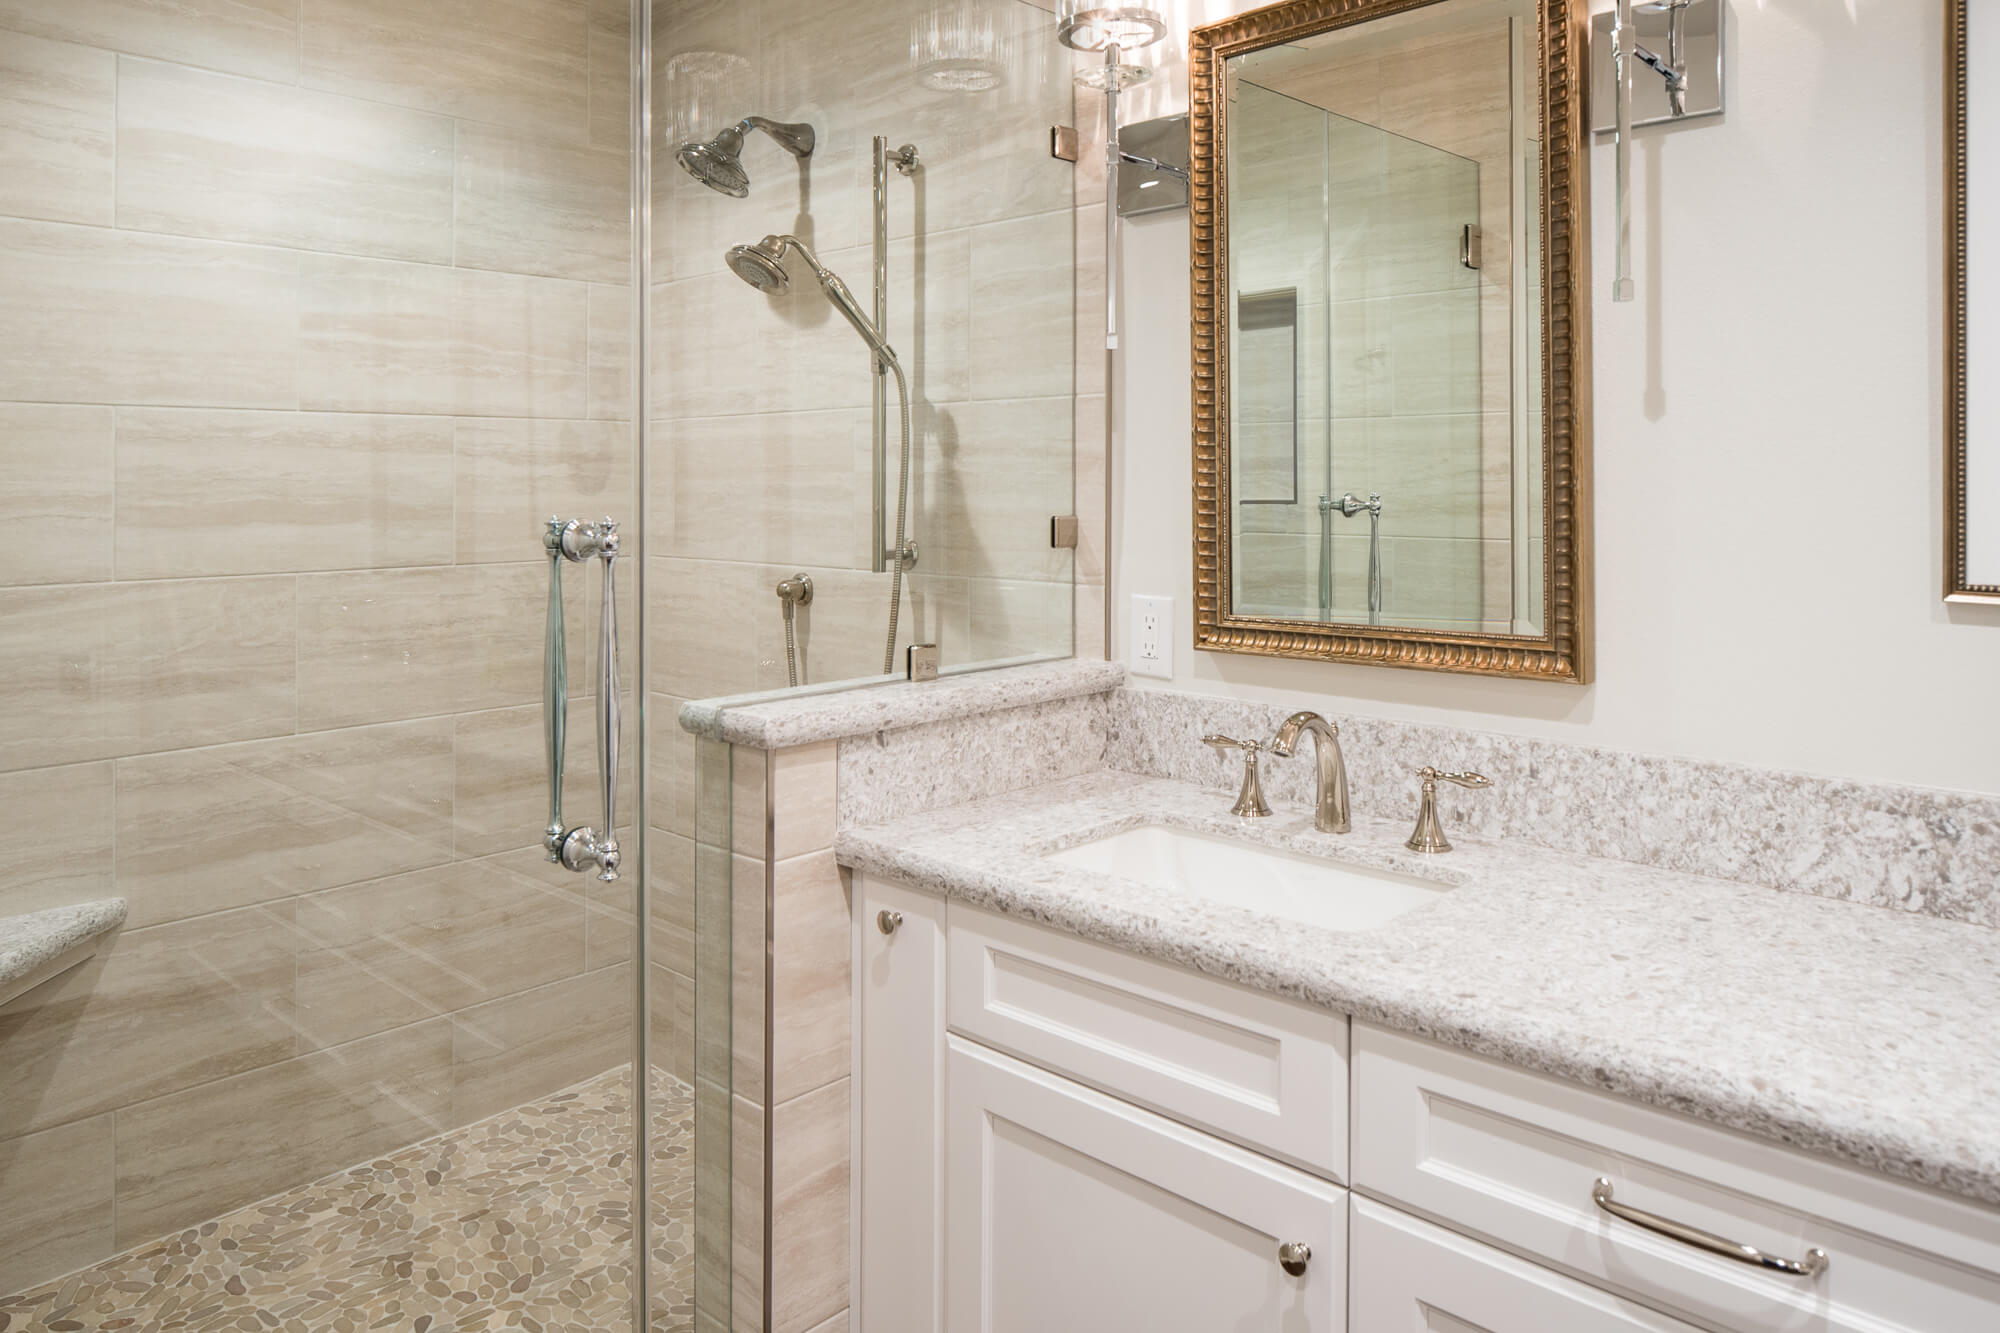 Bathroom Remodel Design Guide Bathtubs Showers Sinks